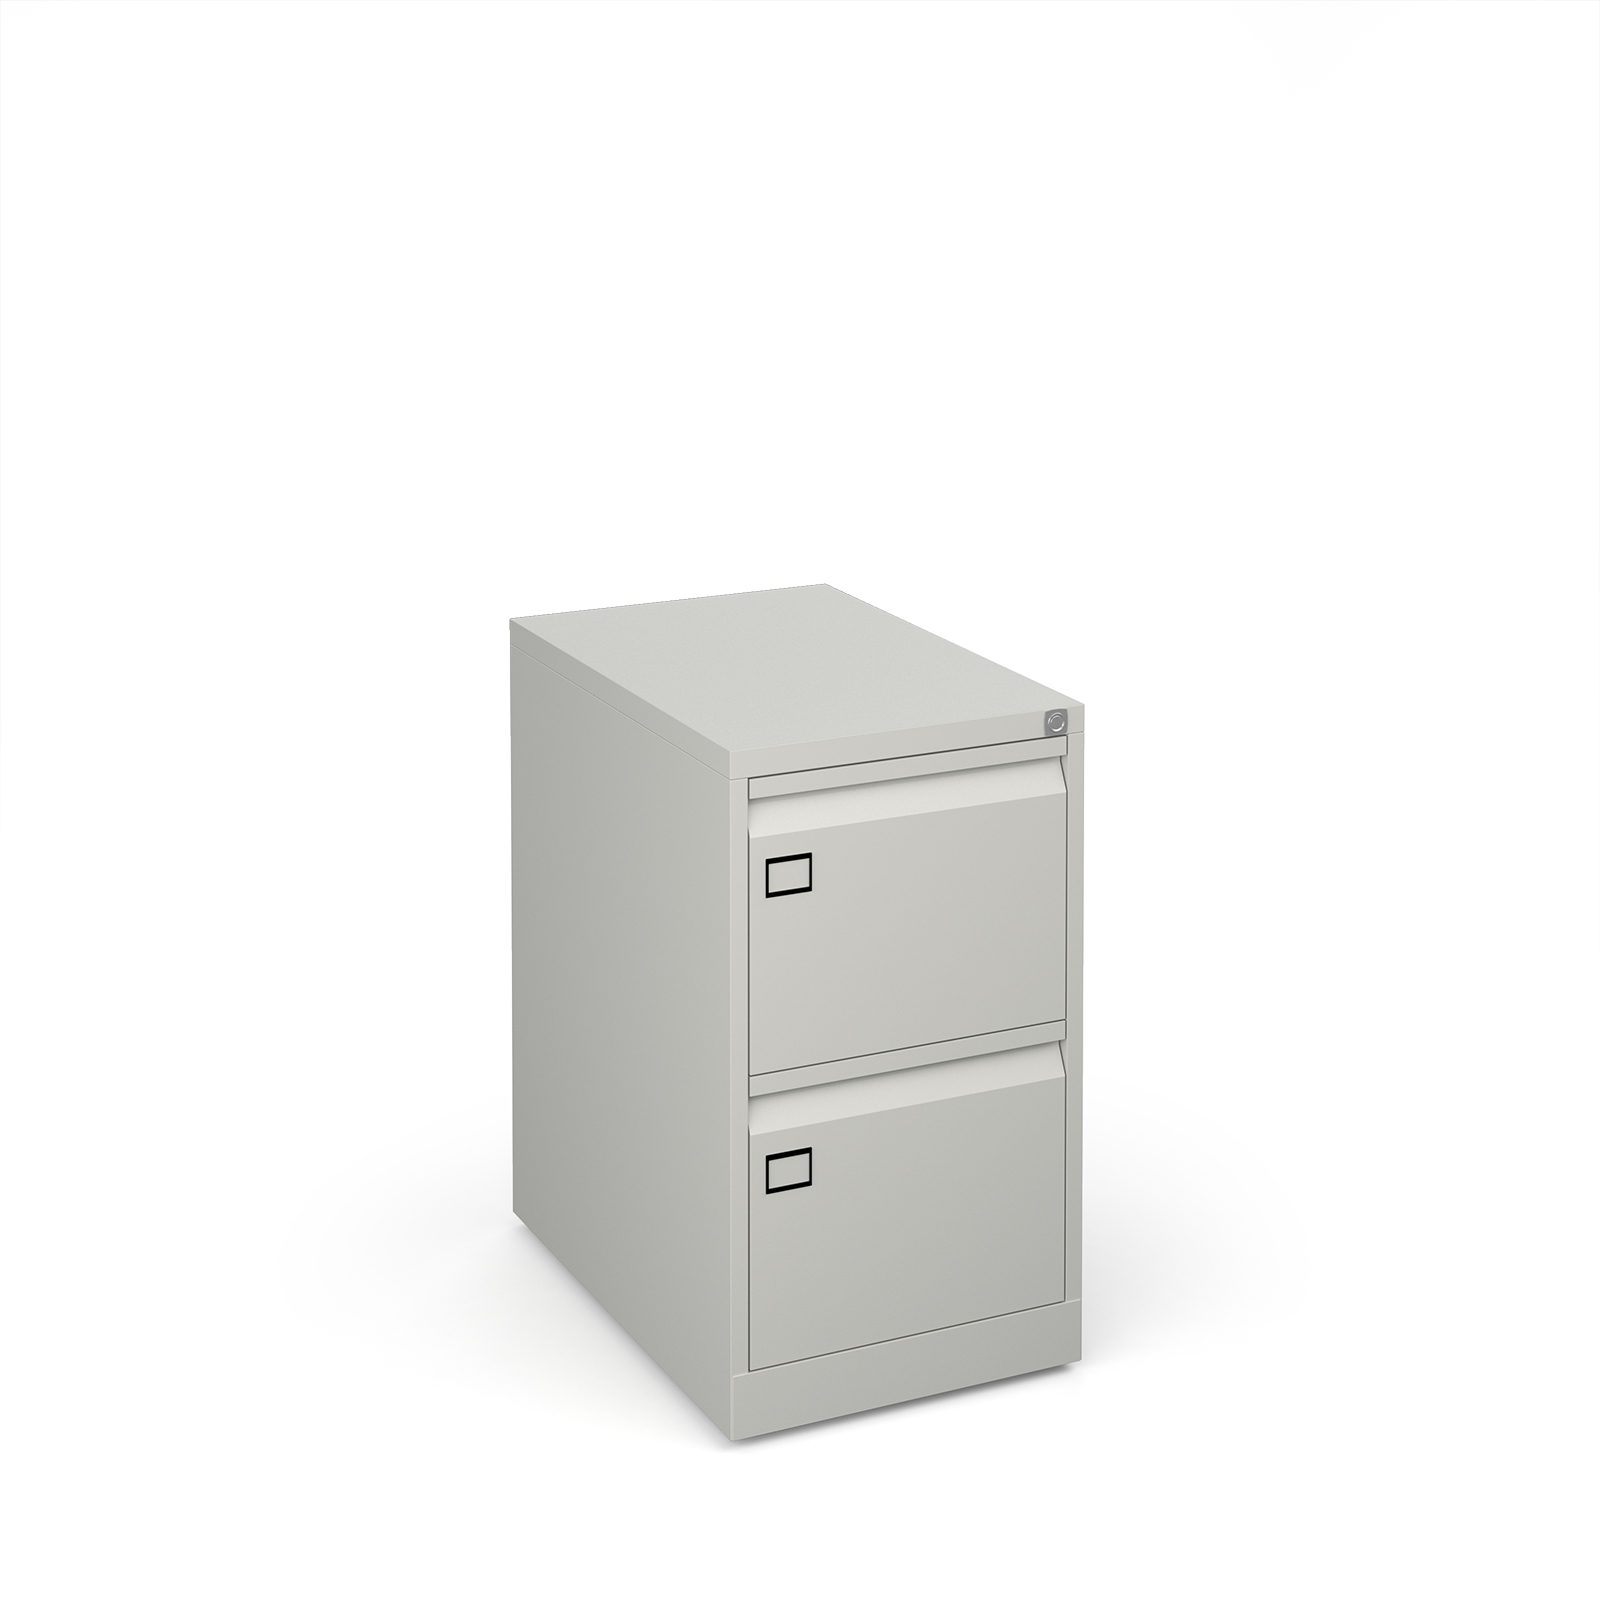 Steel Steel executive filing cabinet